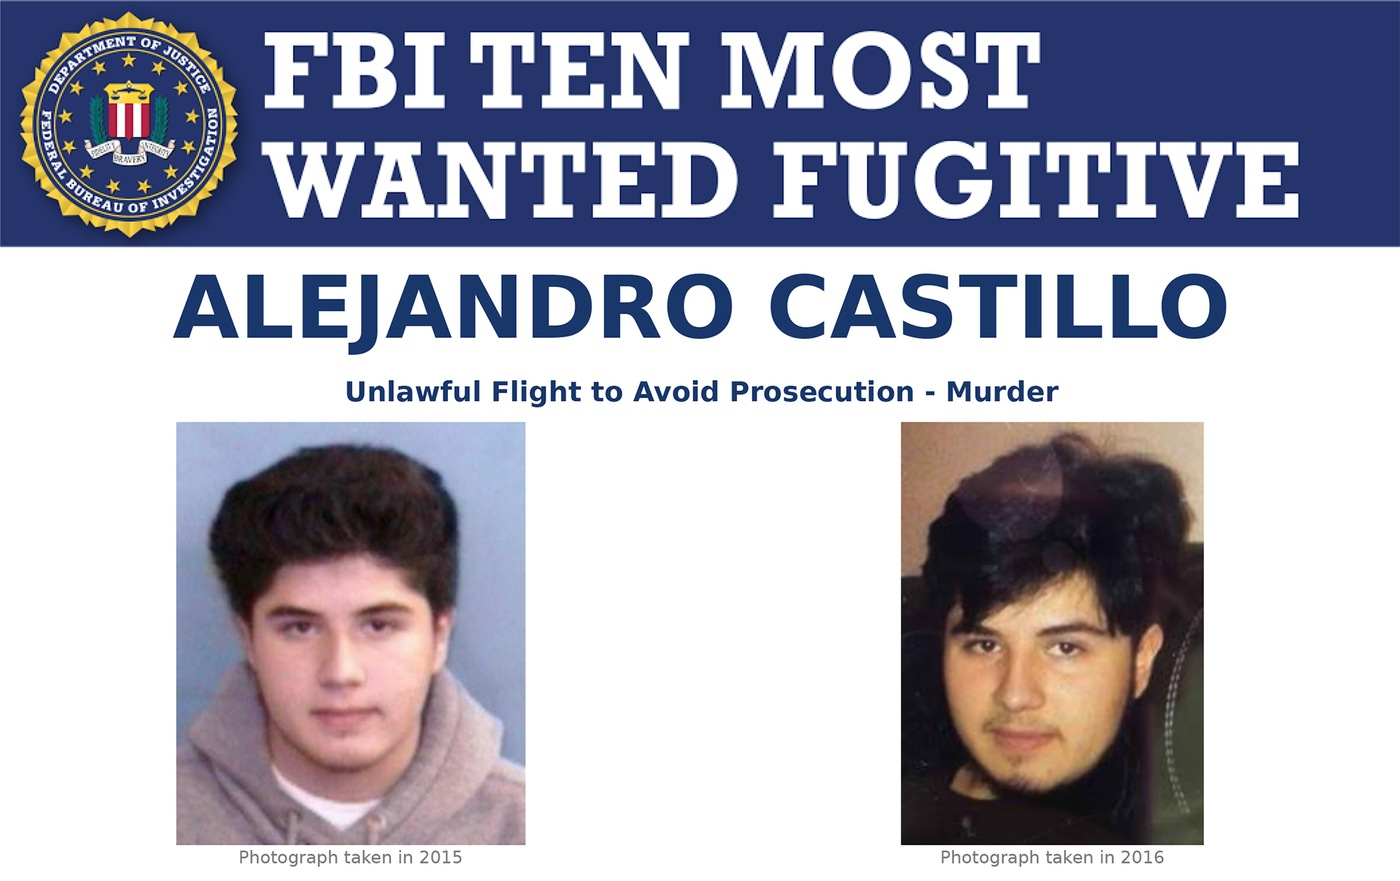 Screenshot of top portion of Ten Most Wanted Fugitive poster for Alejandro Castillo.